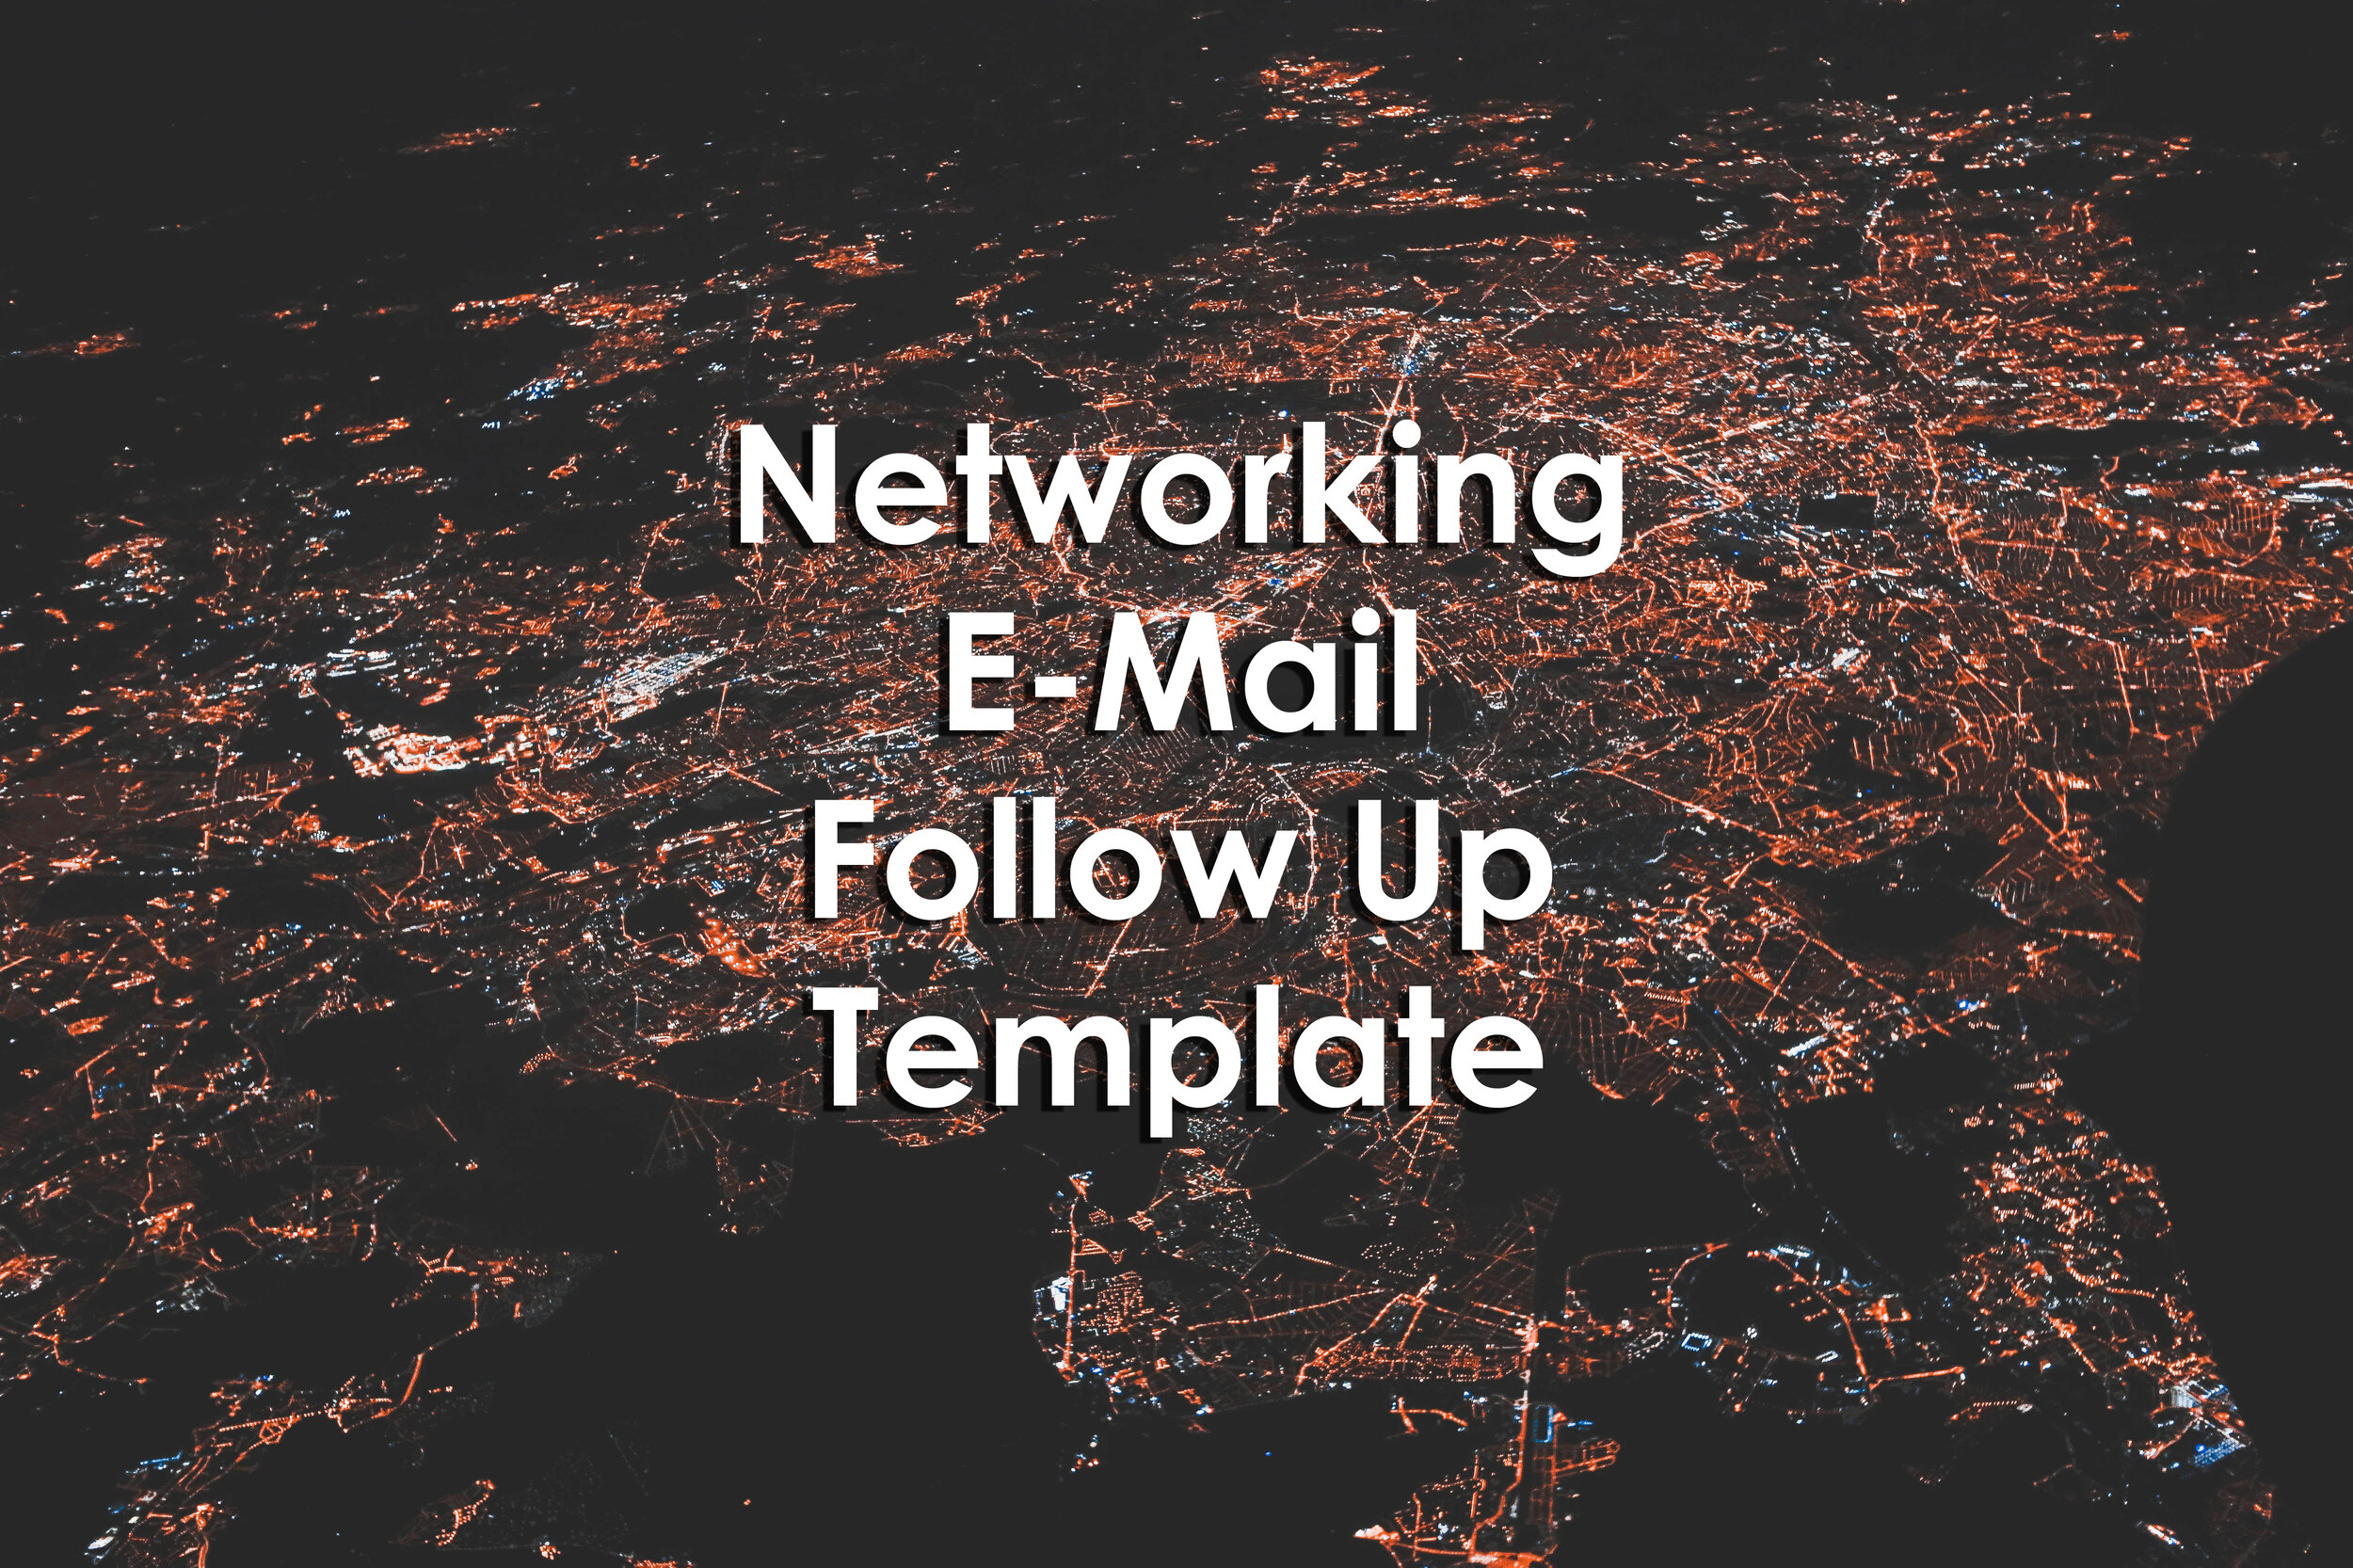 Student Affairs Networking E-Mail Follow Up Template